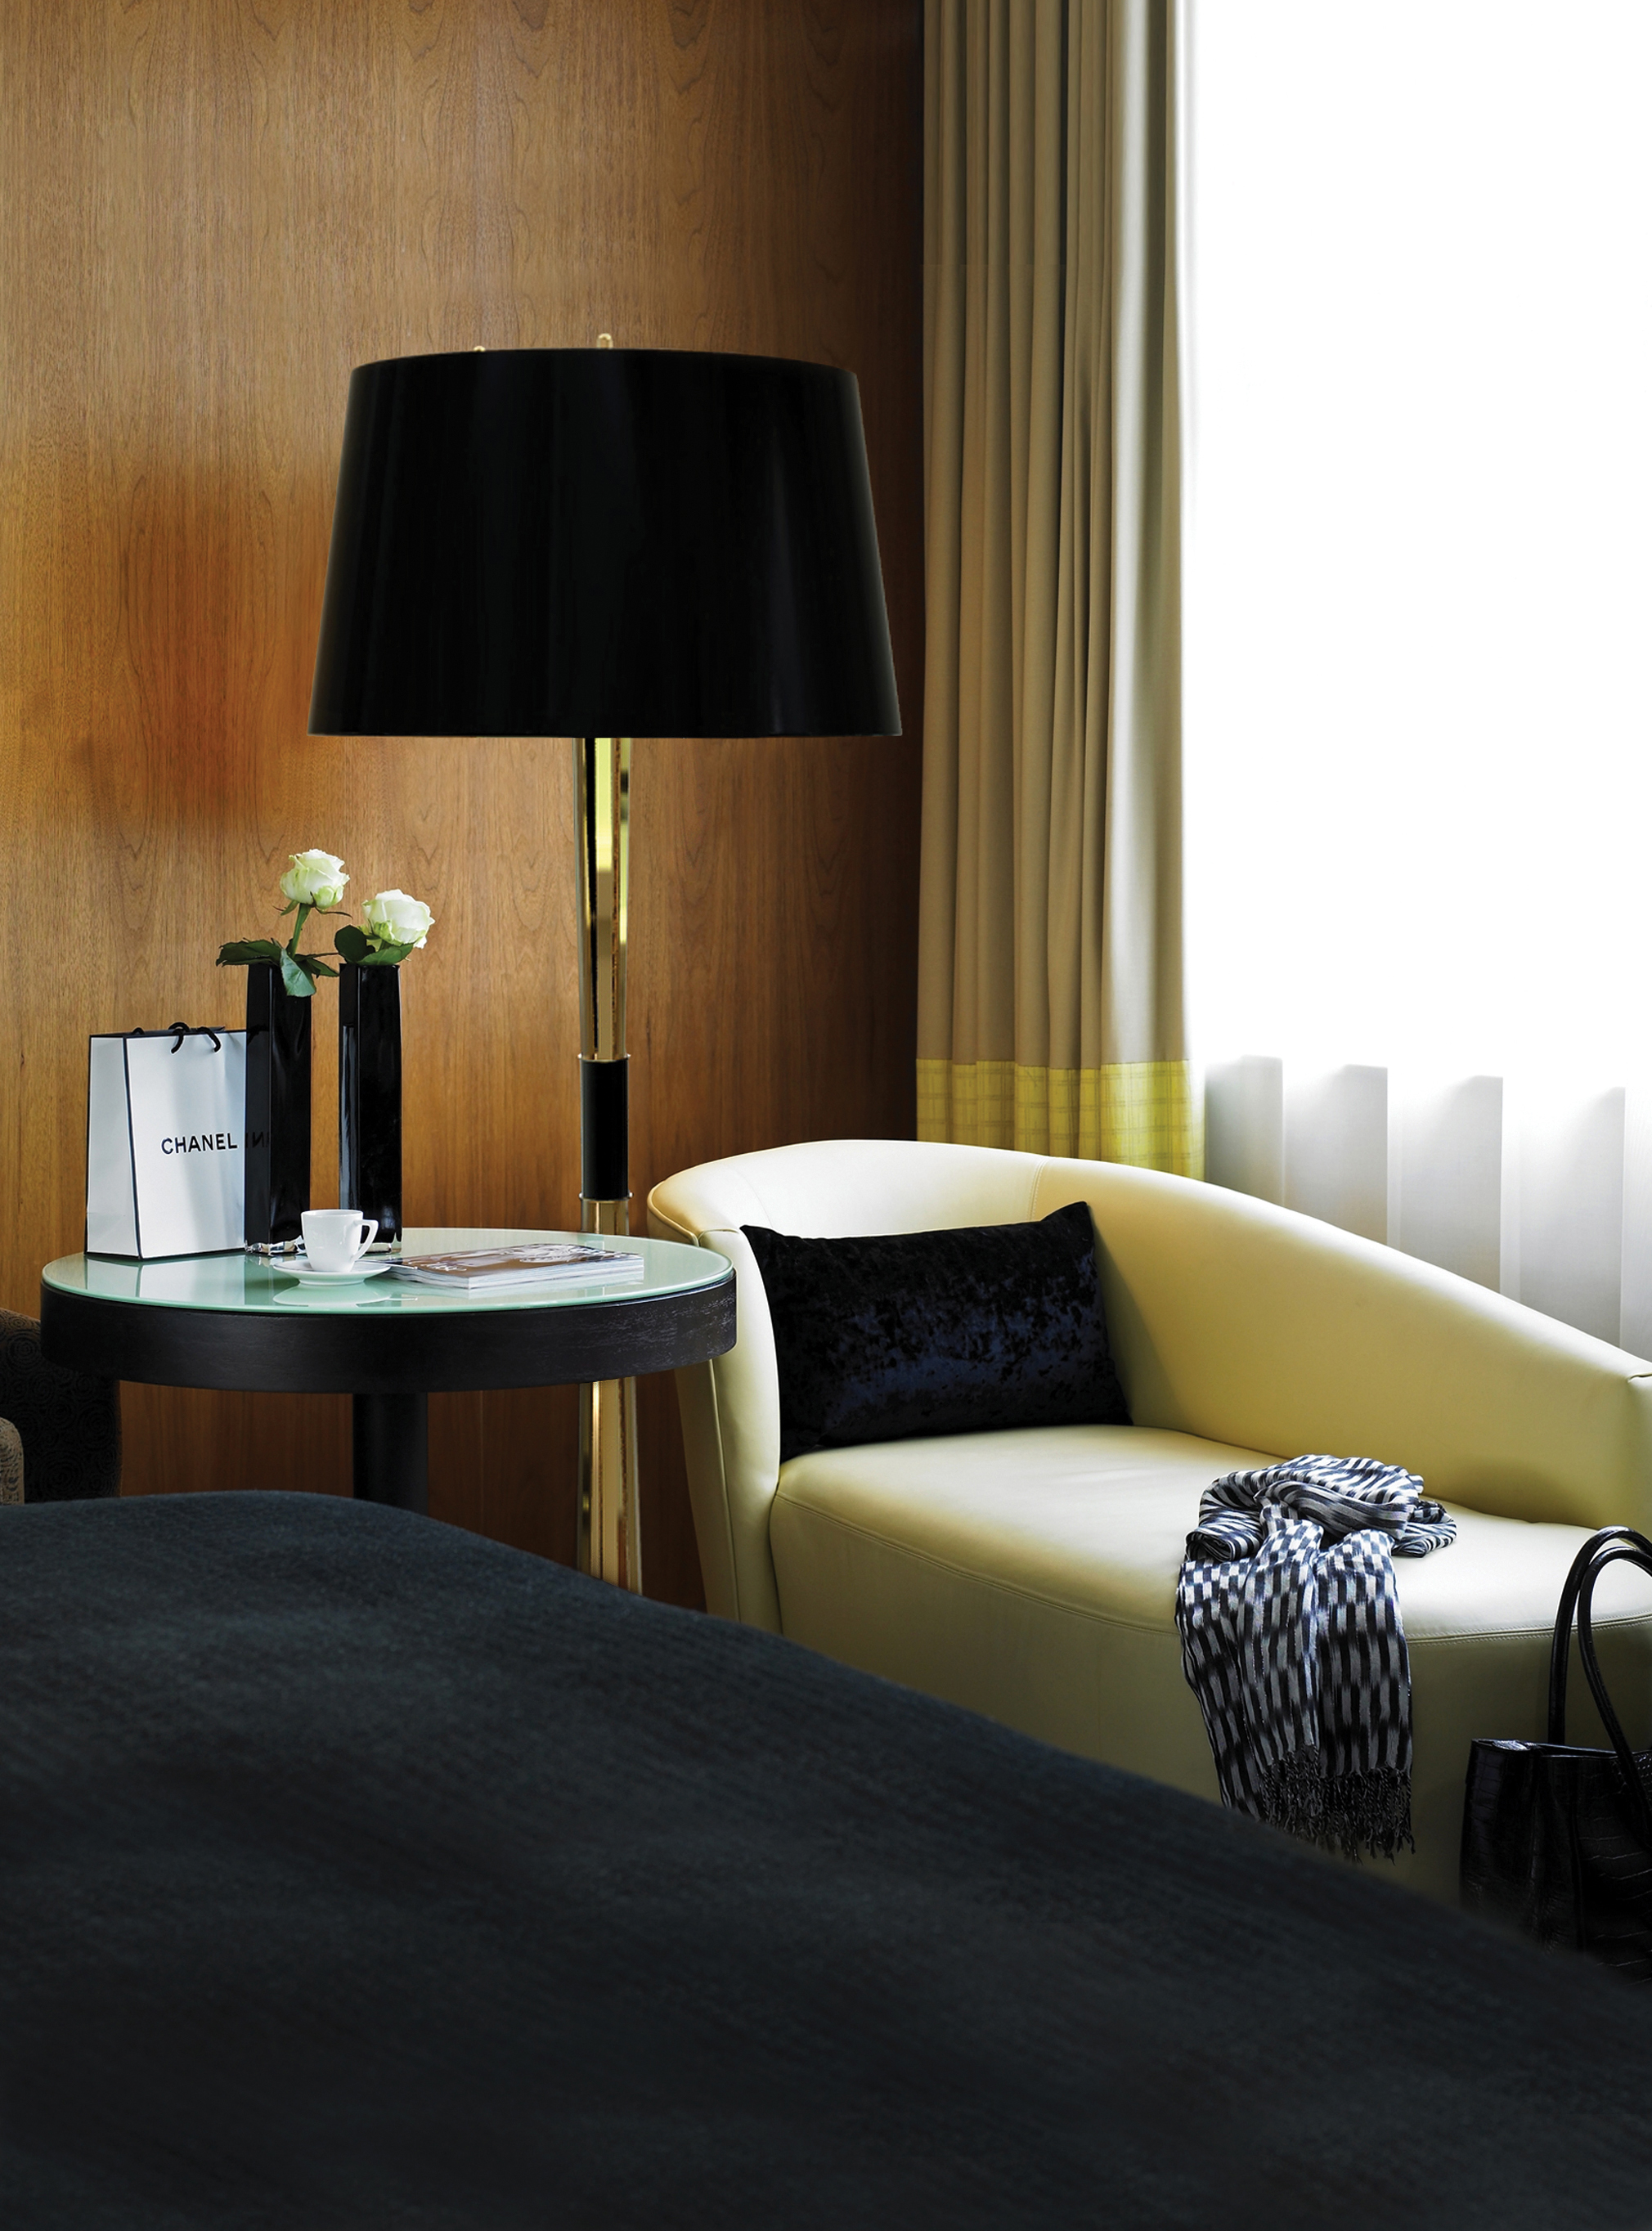 Black Floor Lamps That Will Shine in Your Mid-Century Modern Home 2  Black Floor Lamps That Will Shine in Your Mid-Century Modern Home Black Floor Lamps That Will Shine in Your Mid Century Modern Home 4